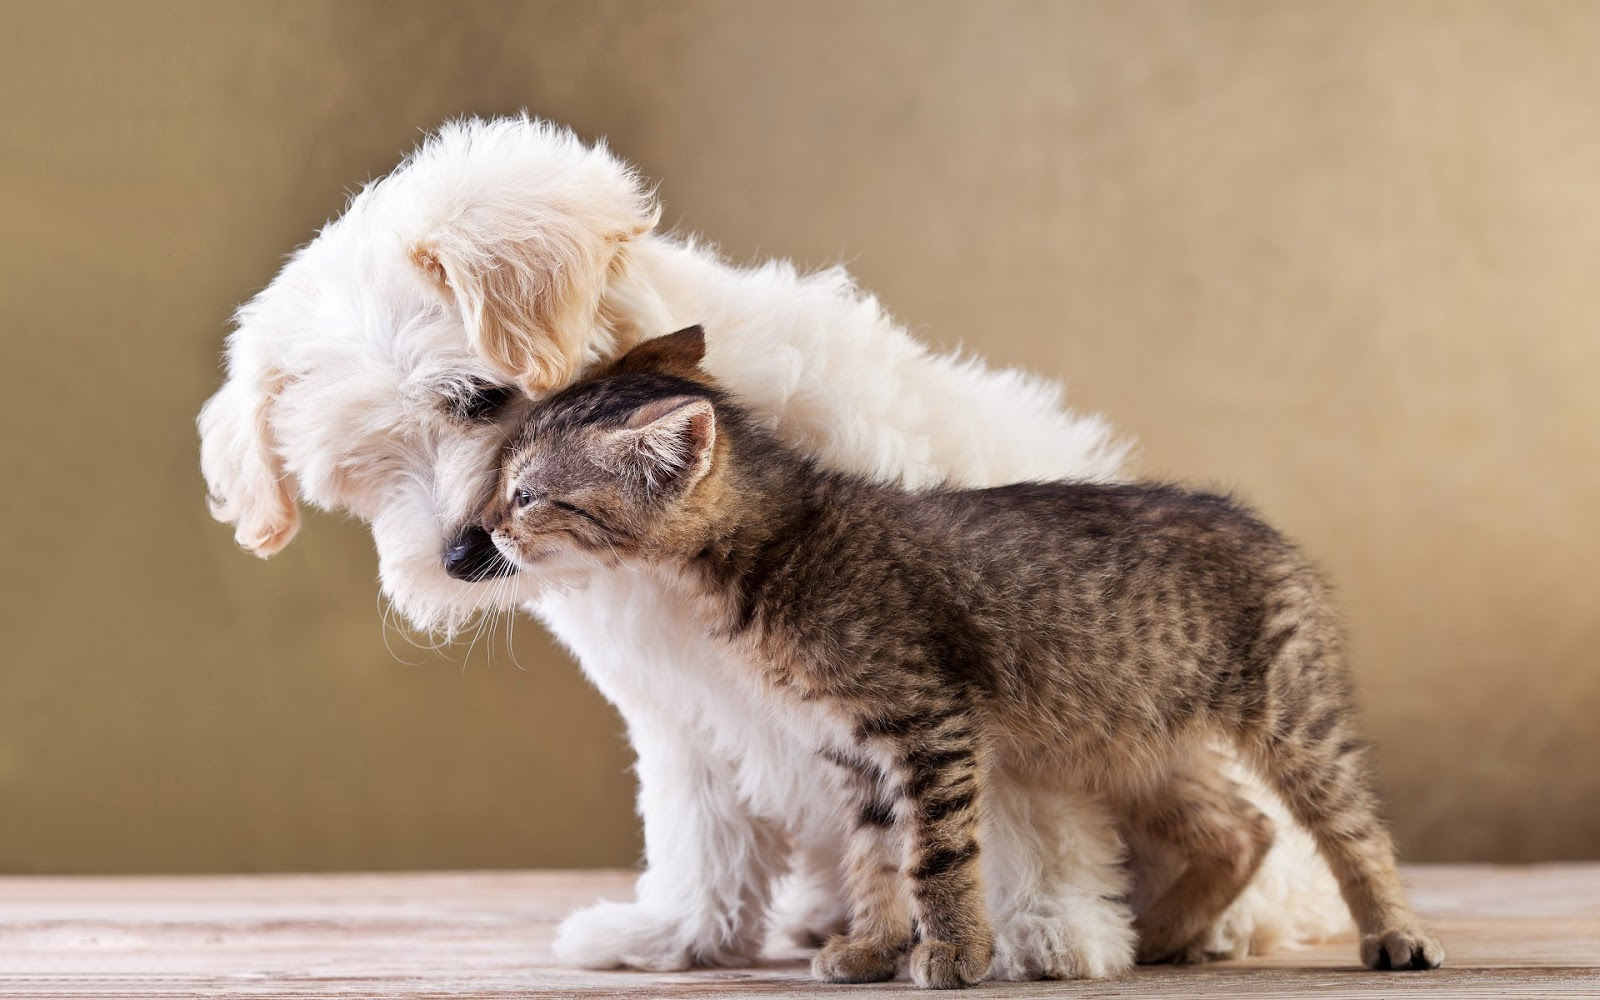 Cat And Dog Friendship Wallpapers High Quality Download Free